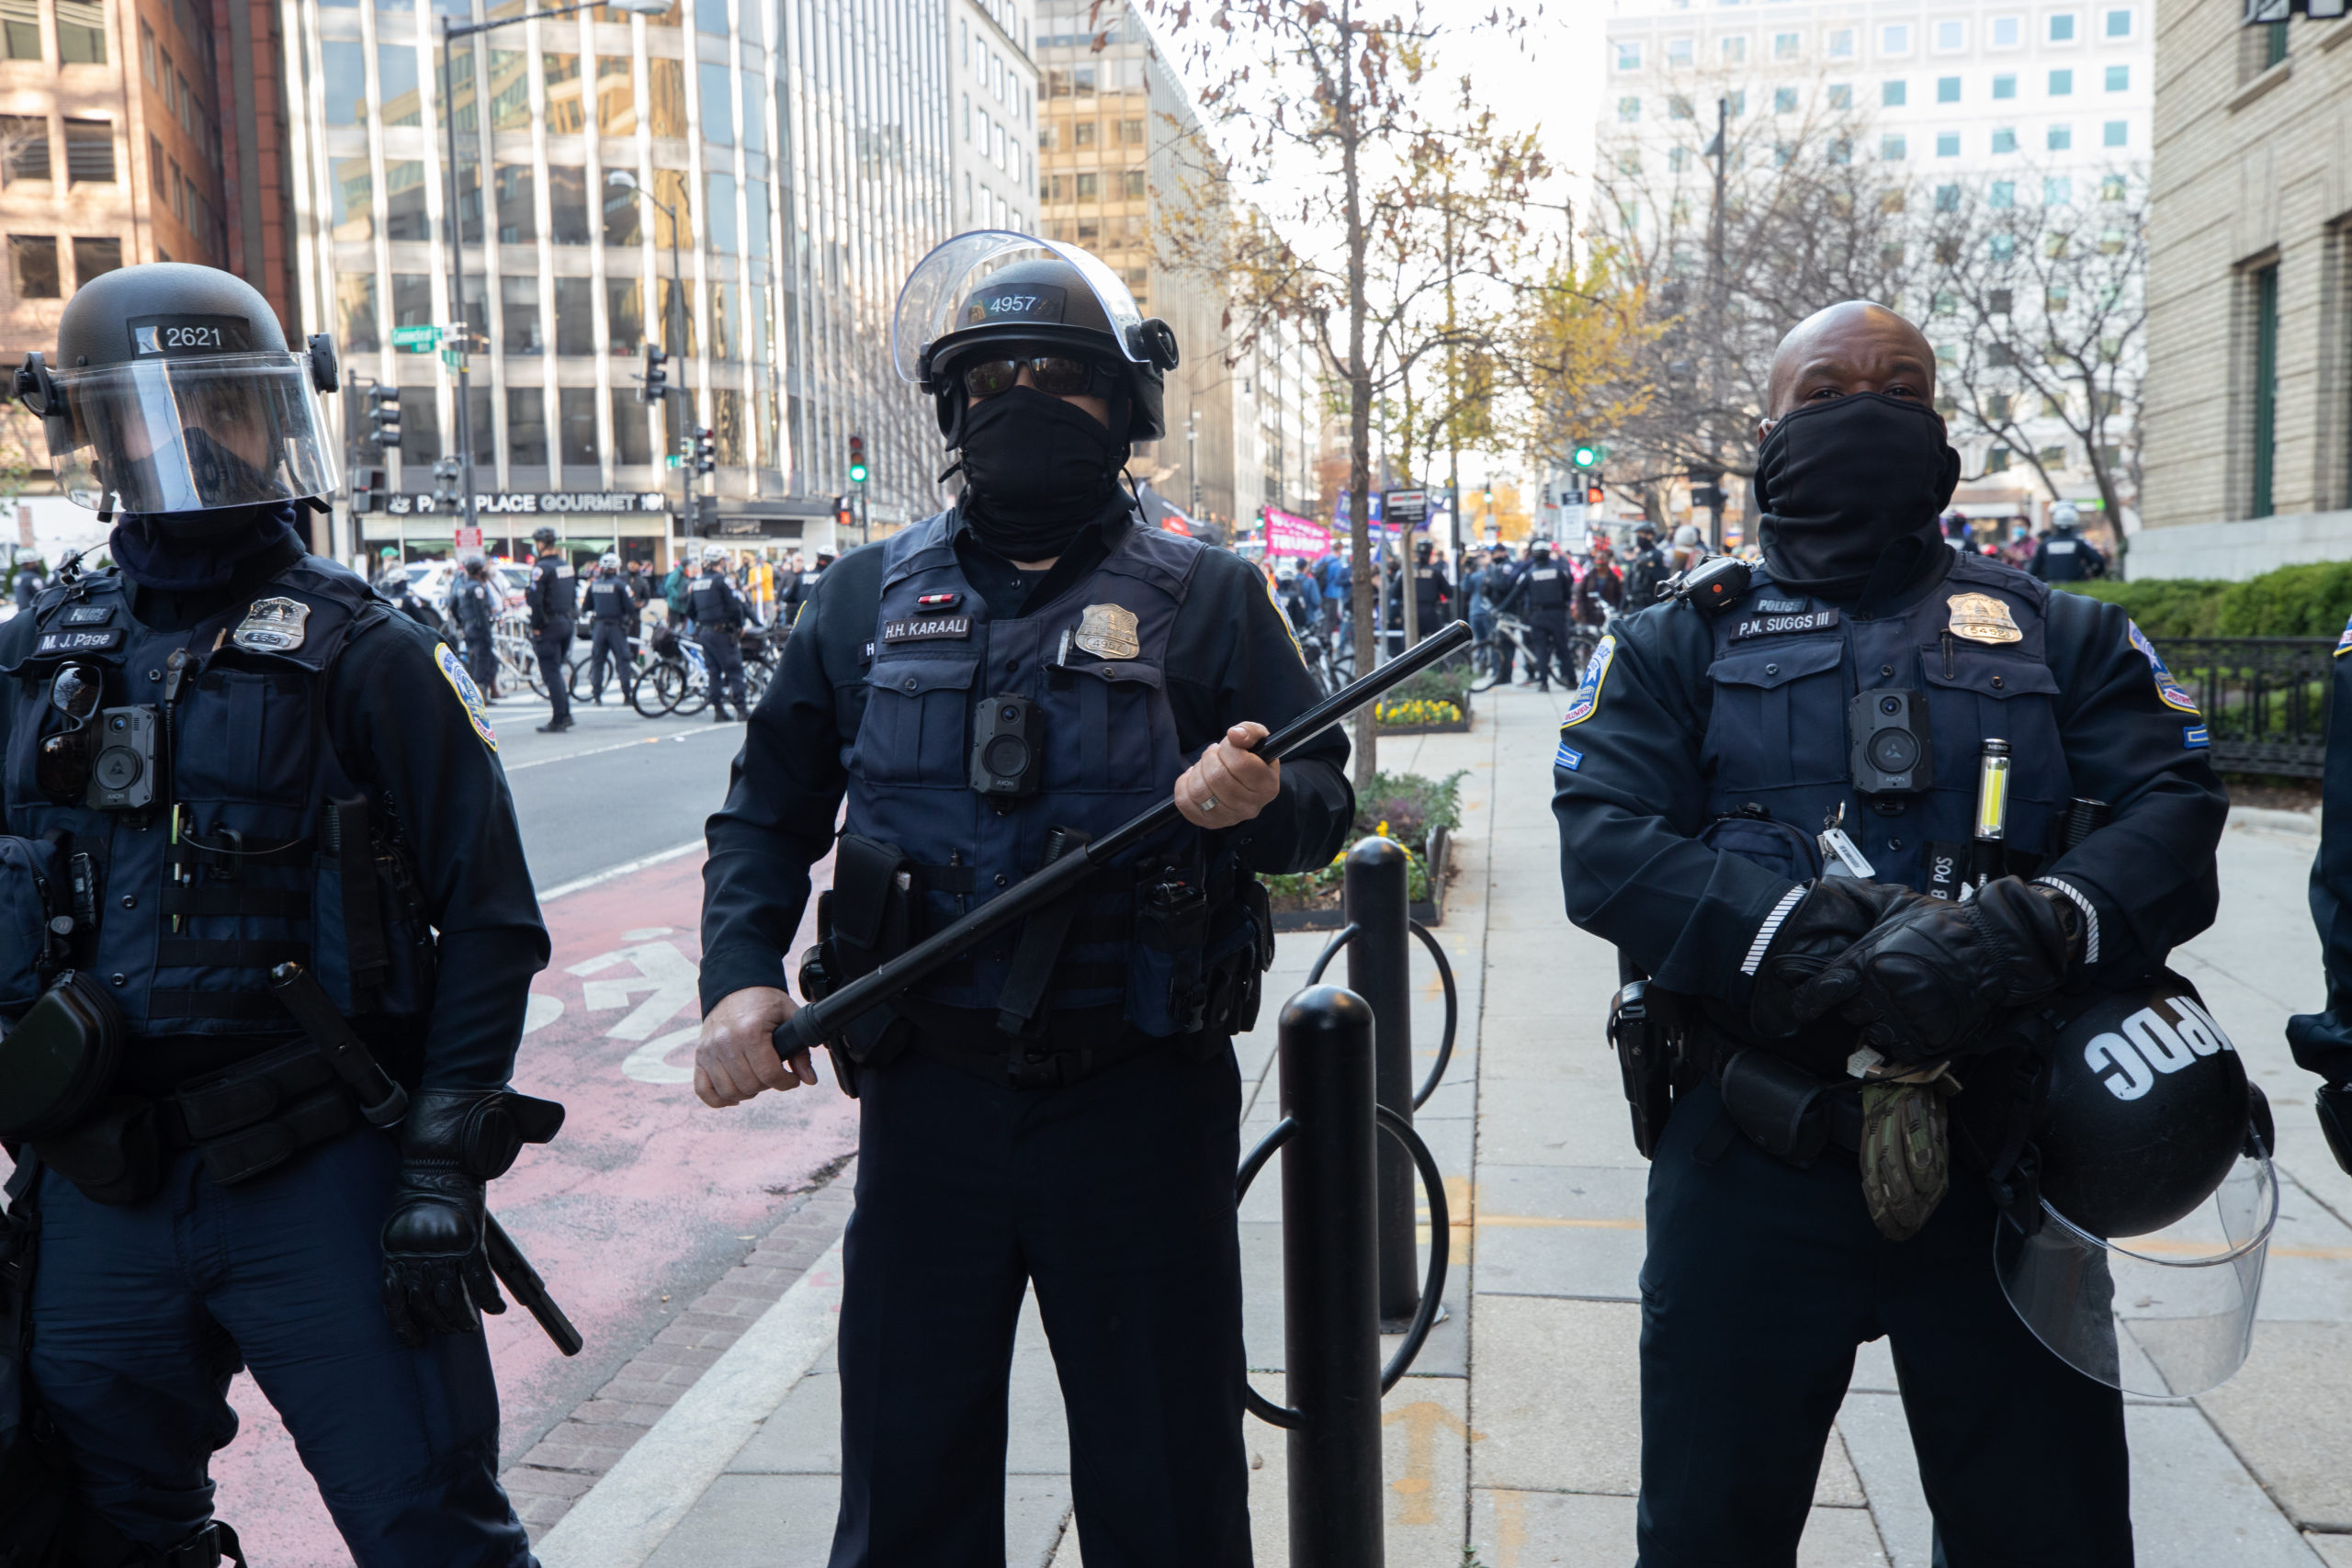 Metropolitan Police Department officers stand between a demonstration of President Donald Trump and counter protesters in Black Lives Matter Plaza on Dec. 12, 2020. (Photo: Kaylee Greenlee - Daily Caller News Foundation)